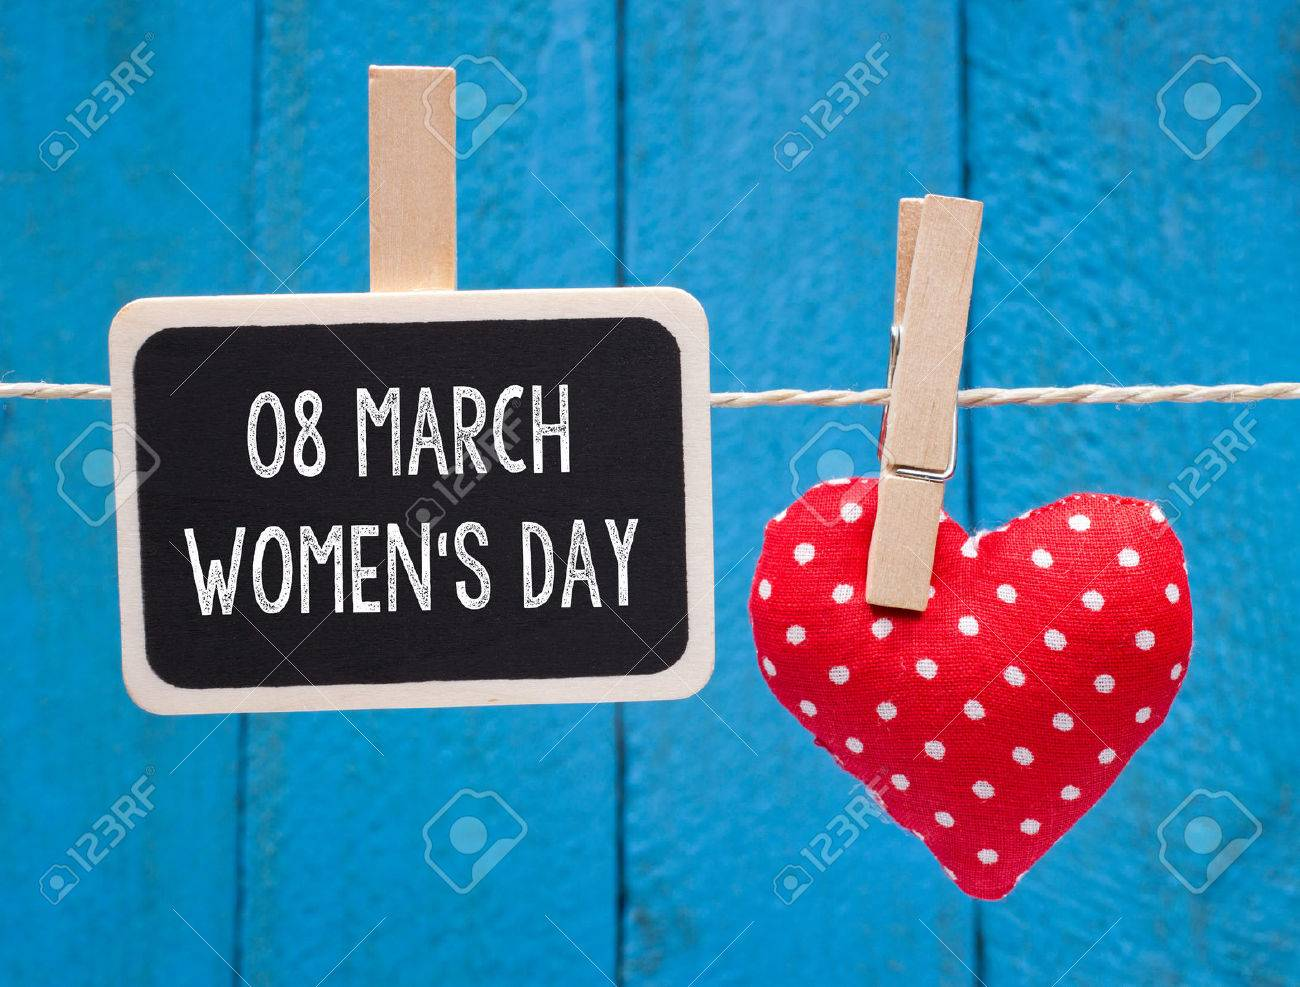 Womens Day - March 08 Stock Photo - 36900814